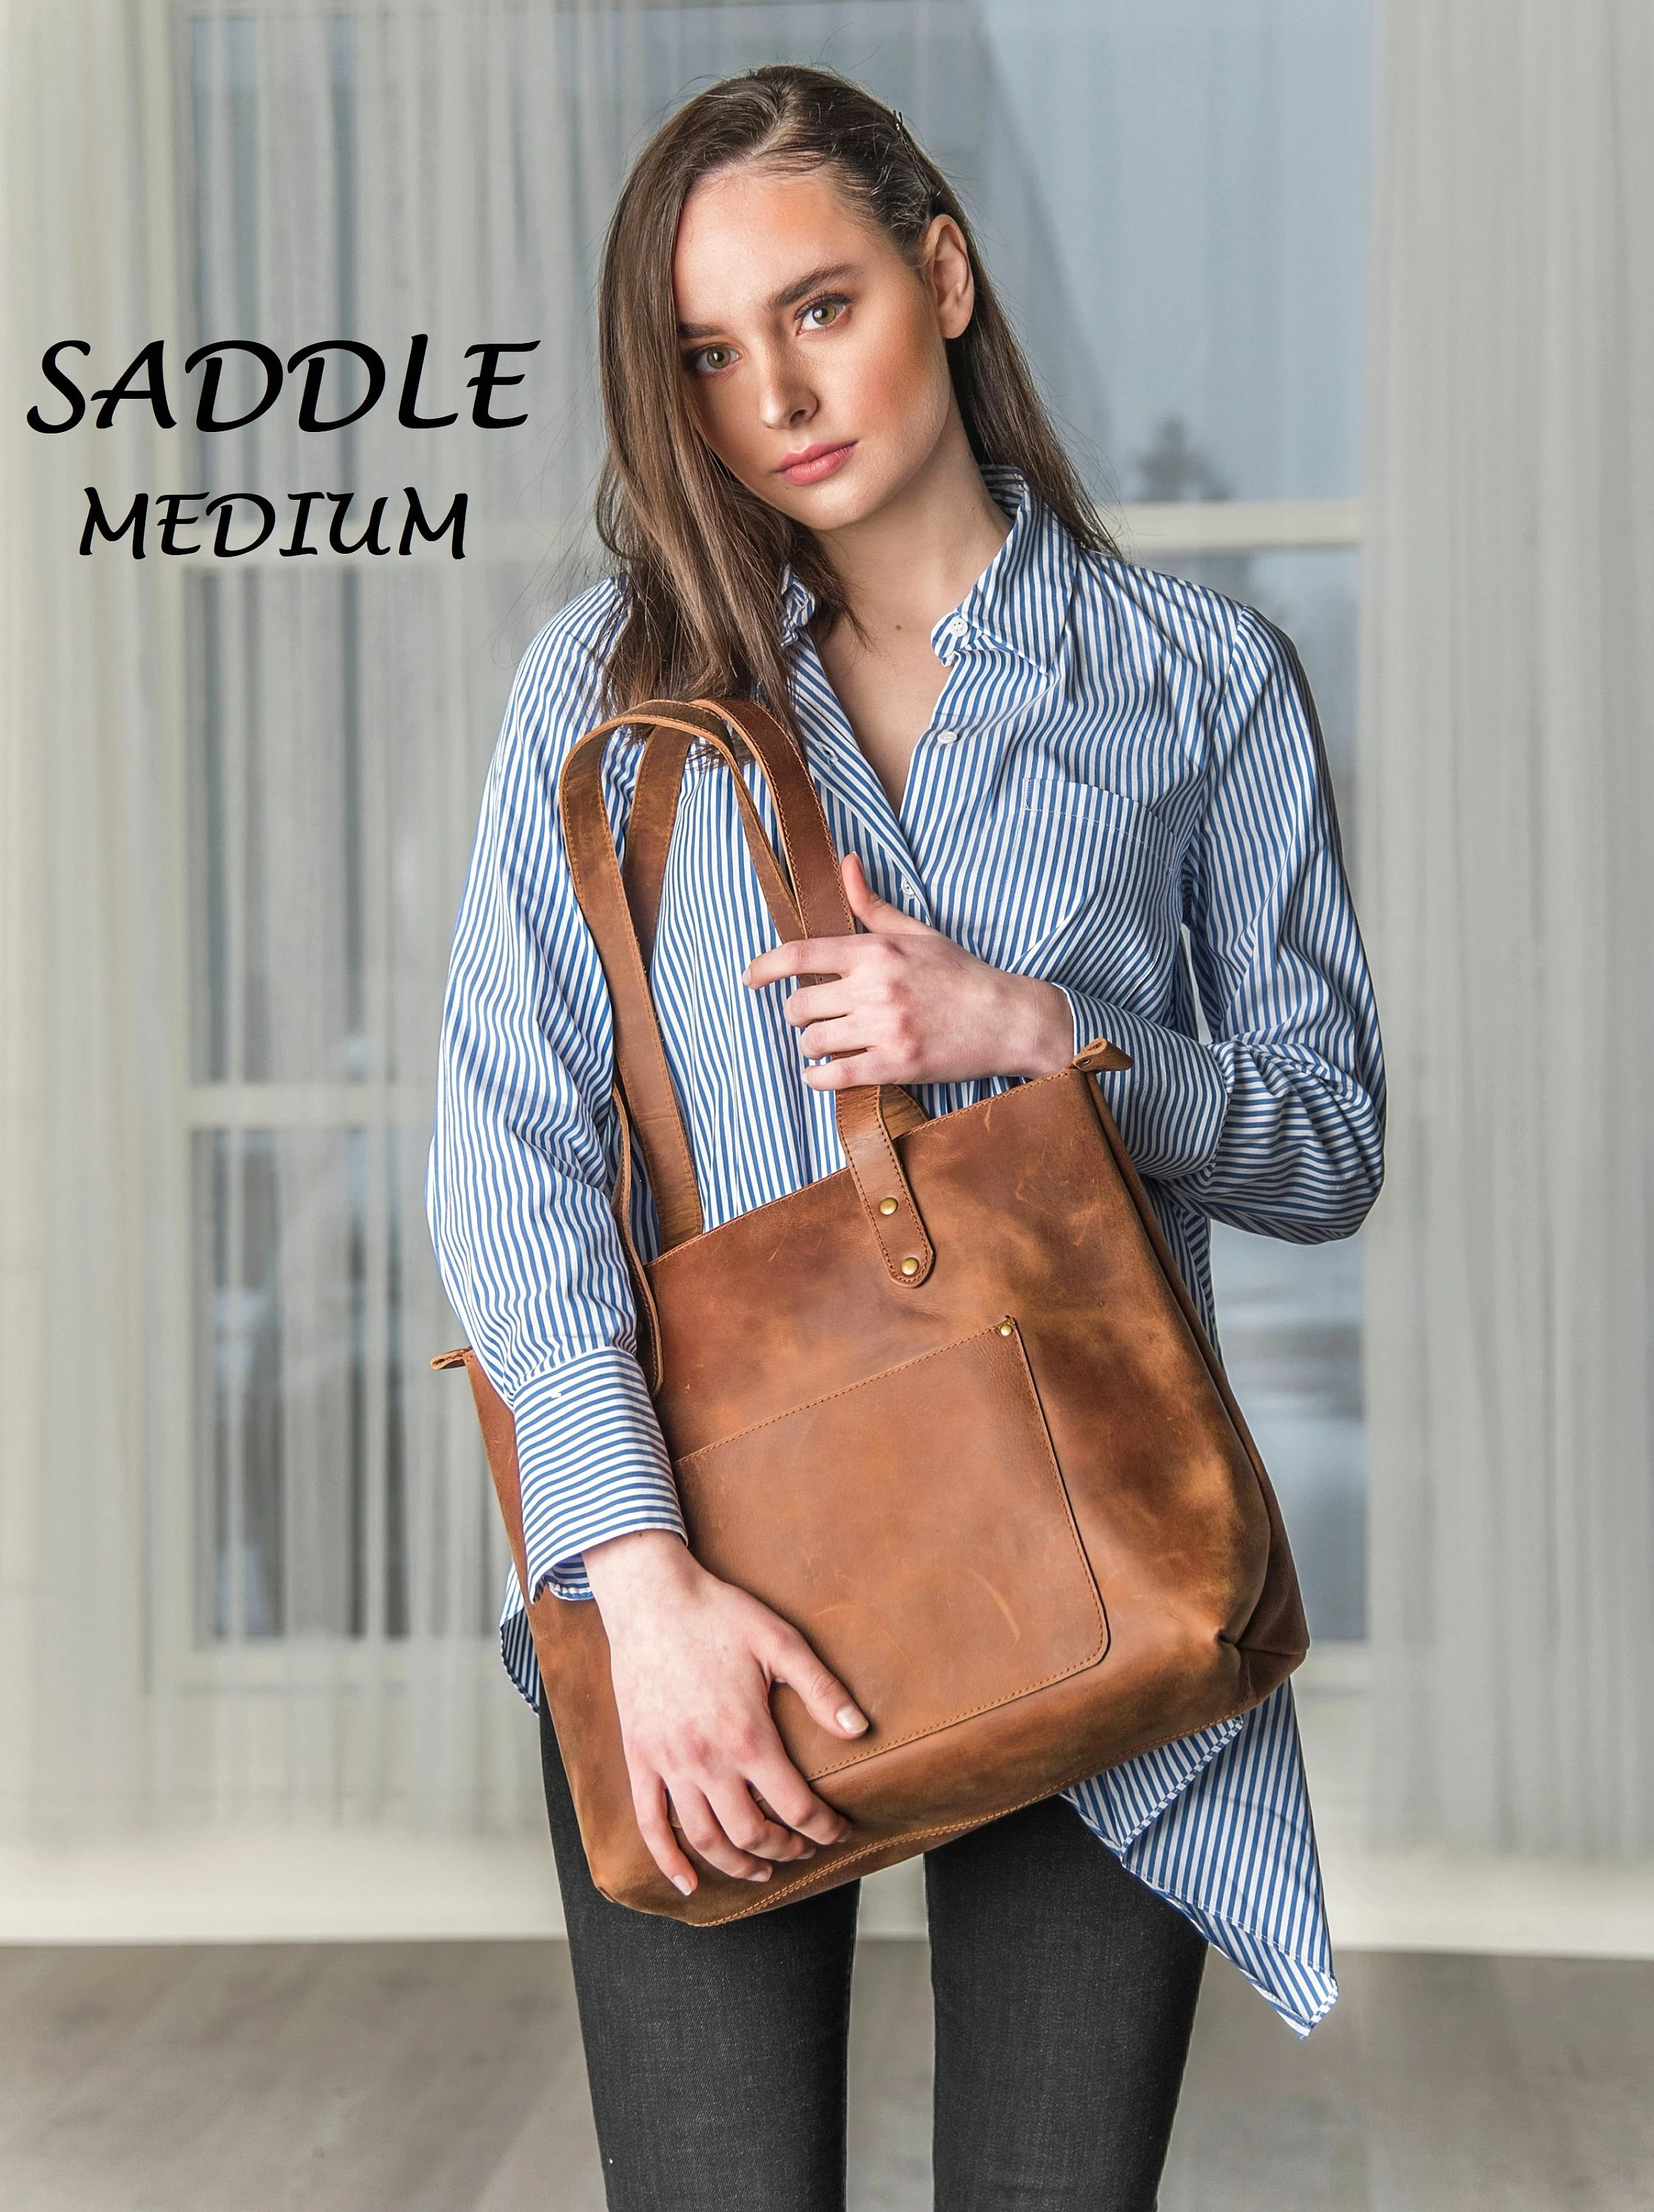 Personalized Leather Tote Bag Women's Leather Handbag image 3